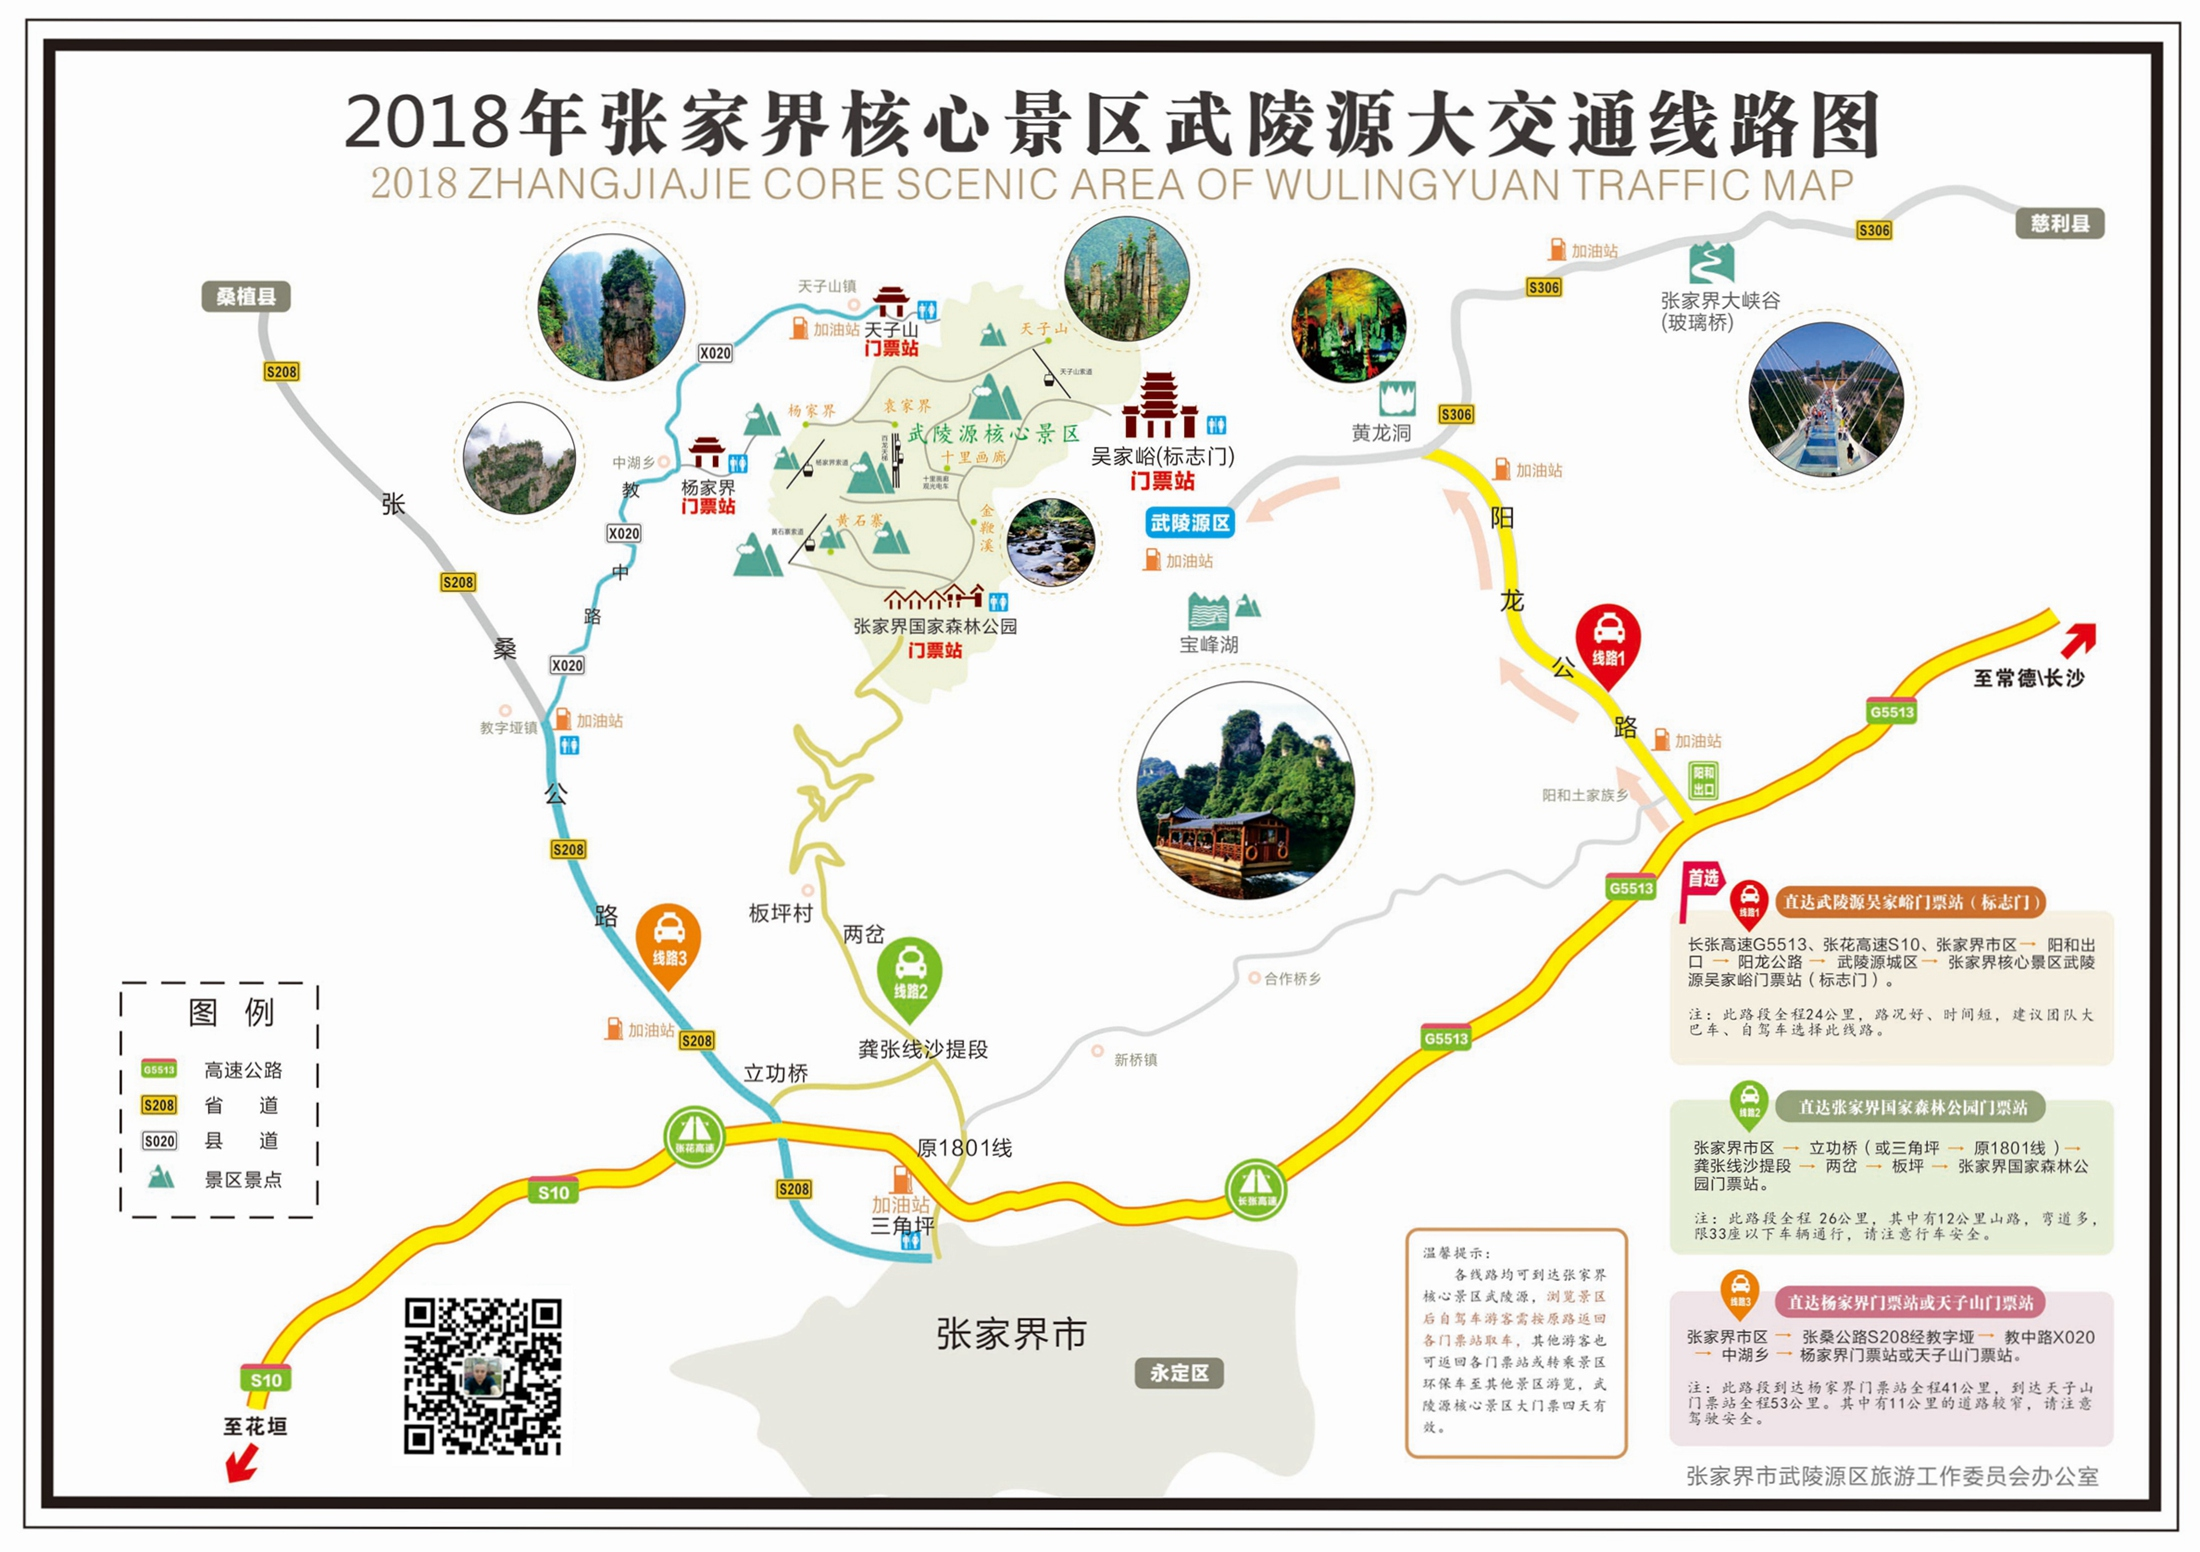 2018 Wulingyuan core scenic area traffic map